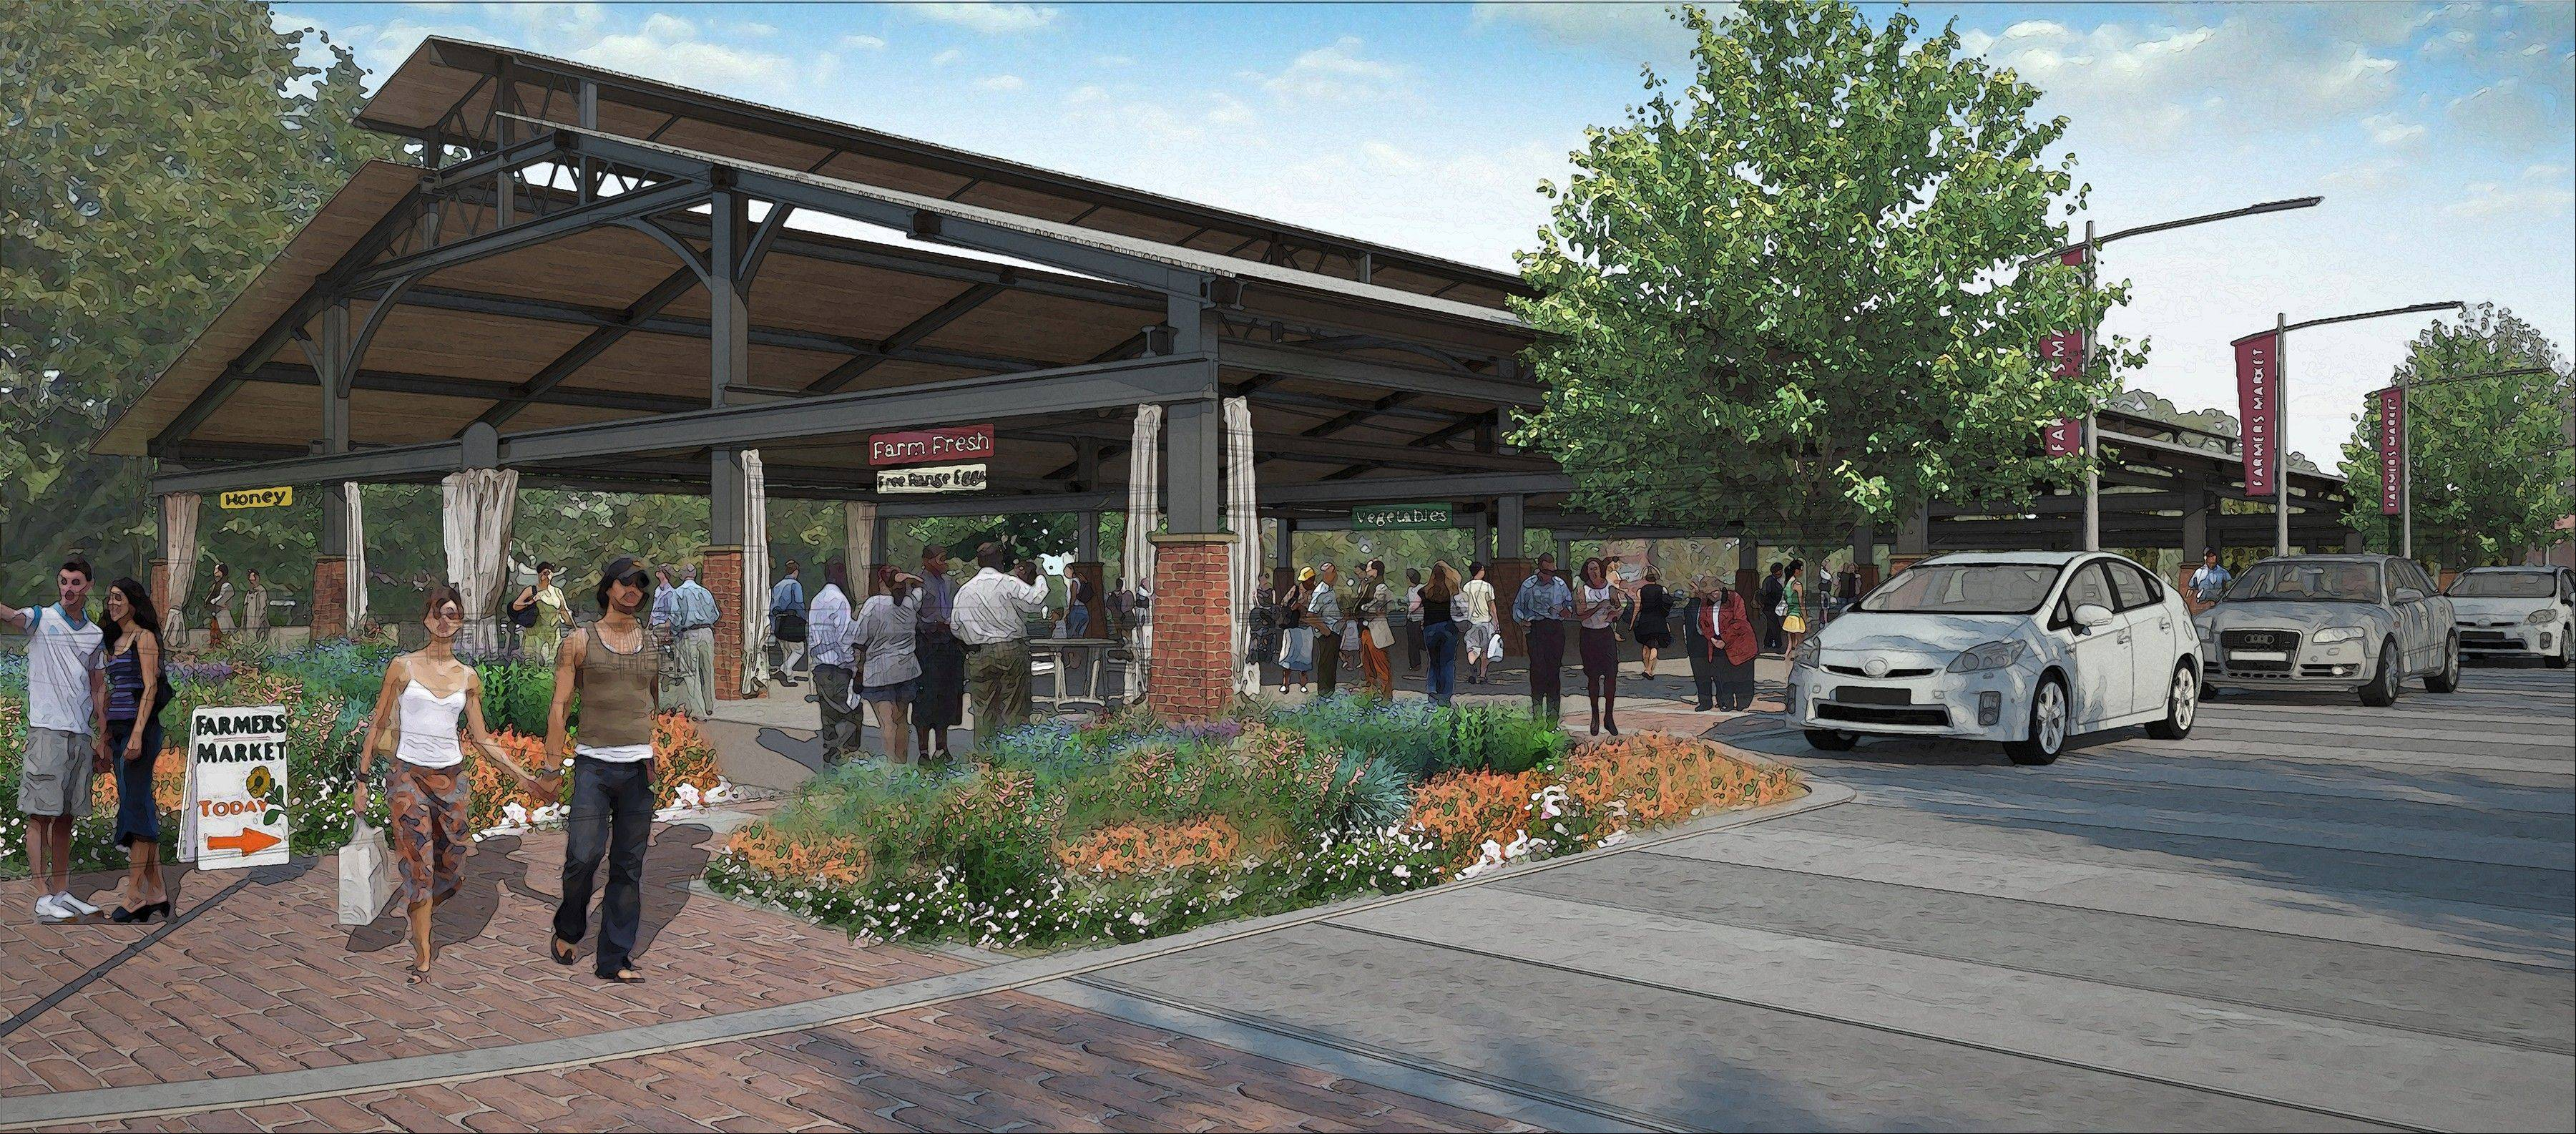 A rendering of the proposed new French Market facility in downtown Wheaton.